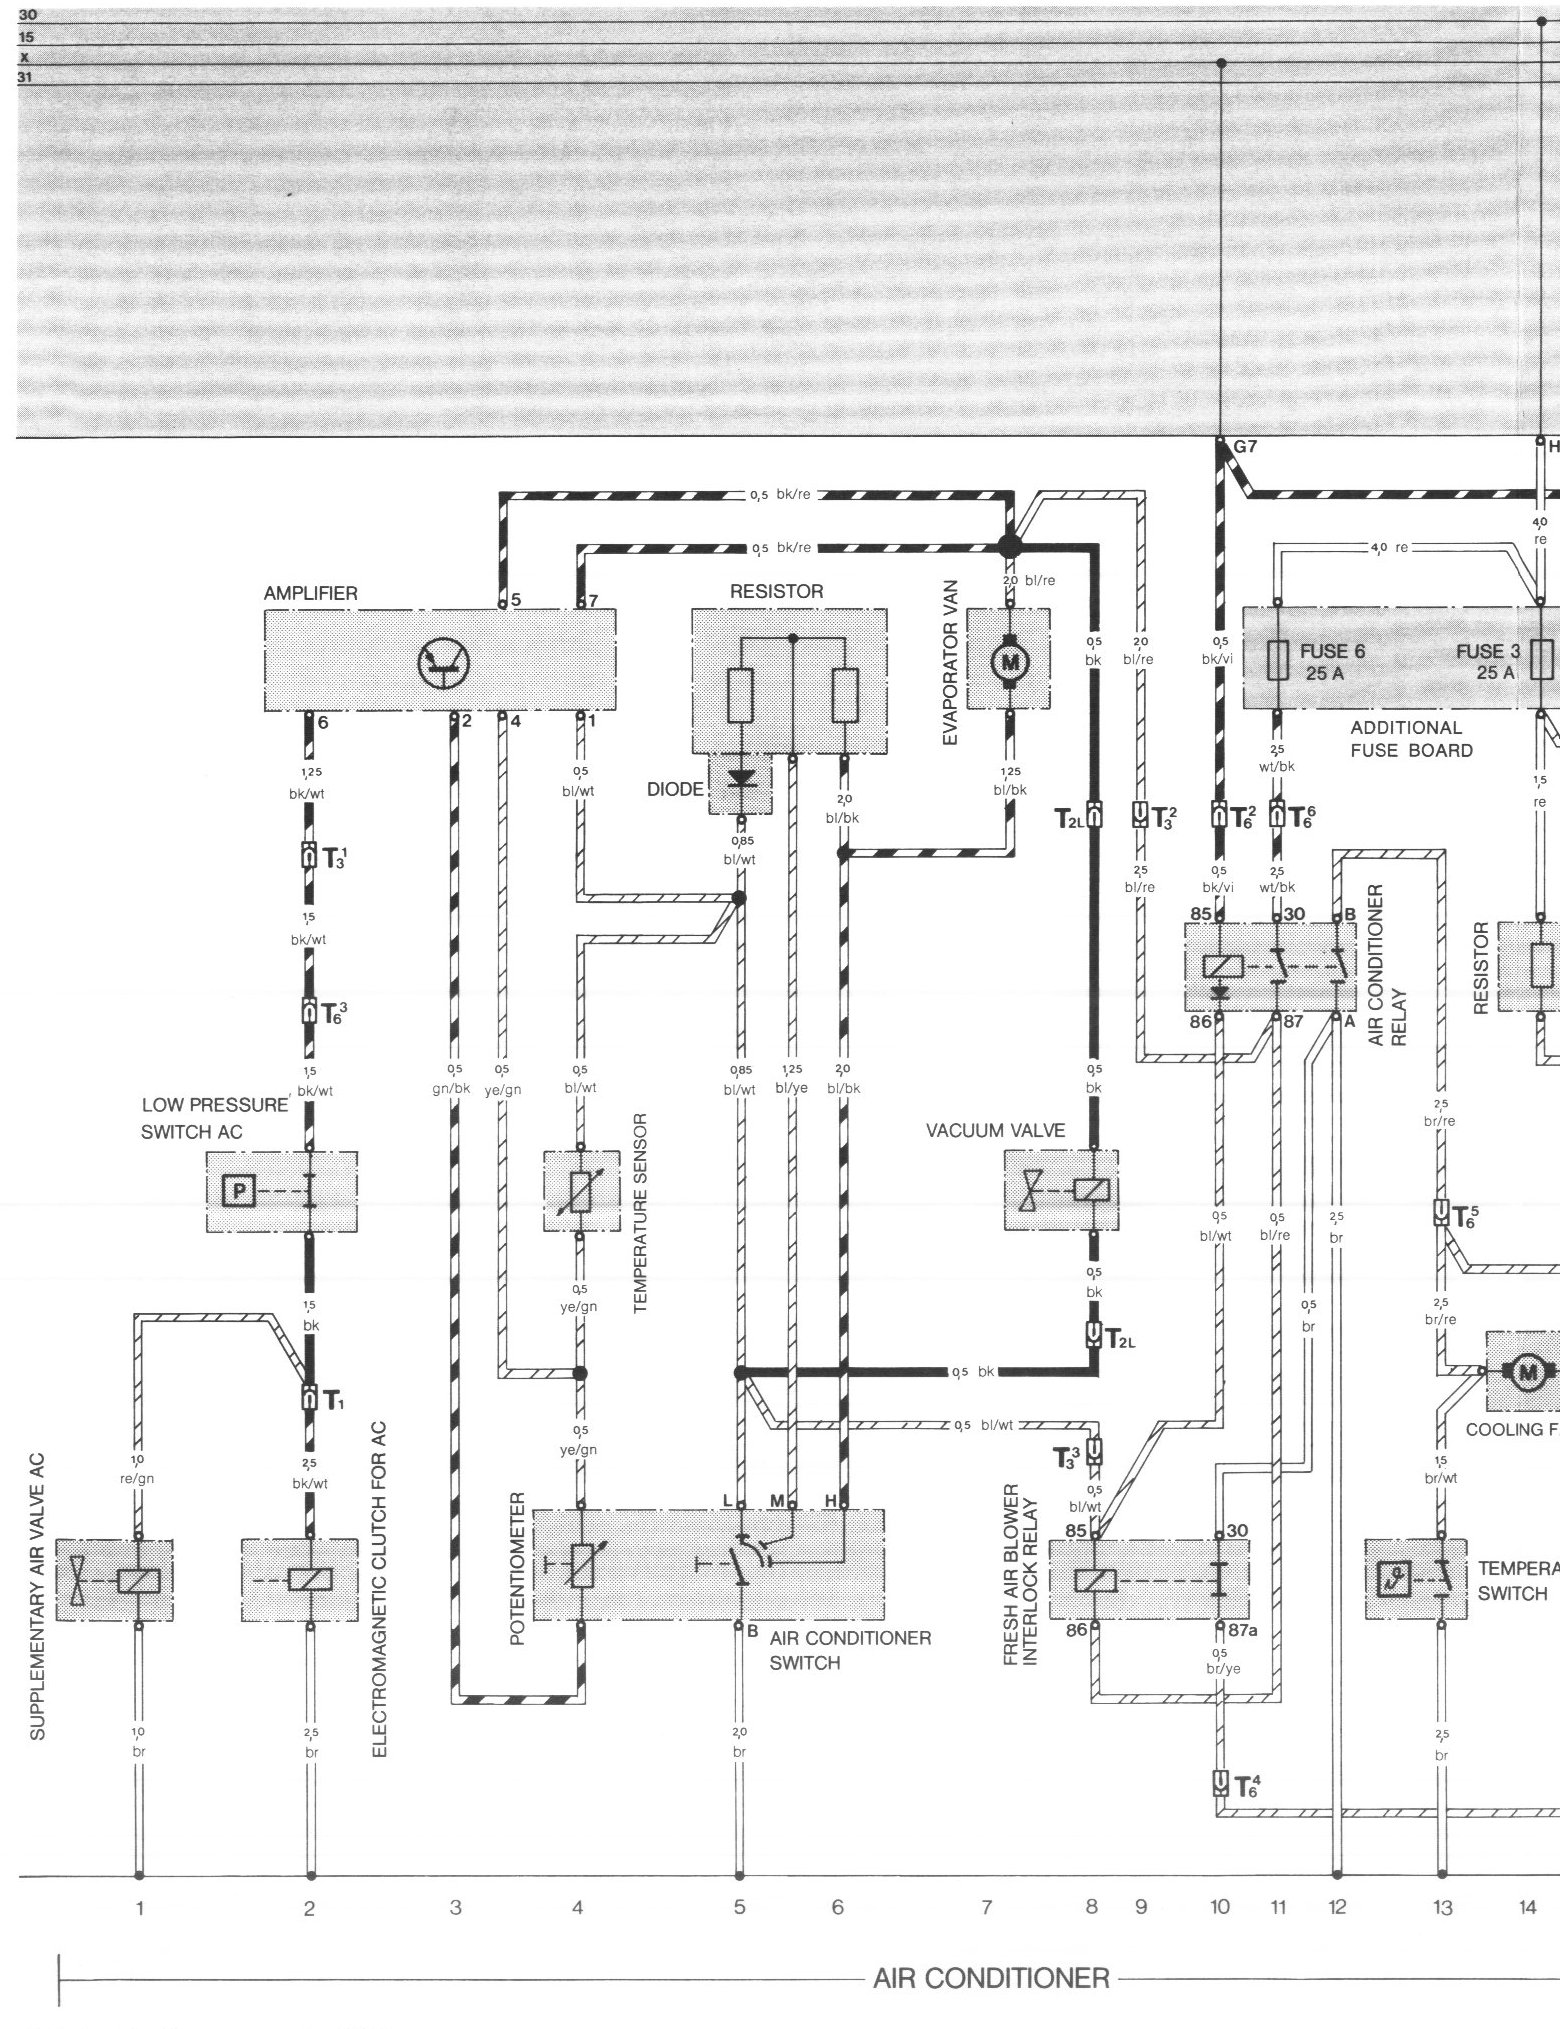 944_84_AC_1 pelican parts porsche 924 944 electrical diagrams 944 s2 wiring diagram at soozxer.org